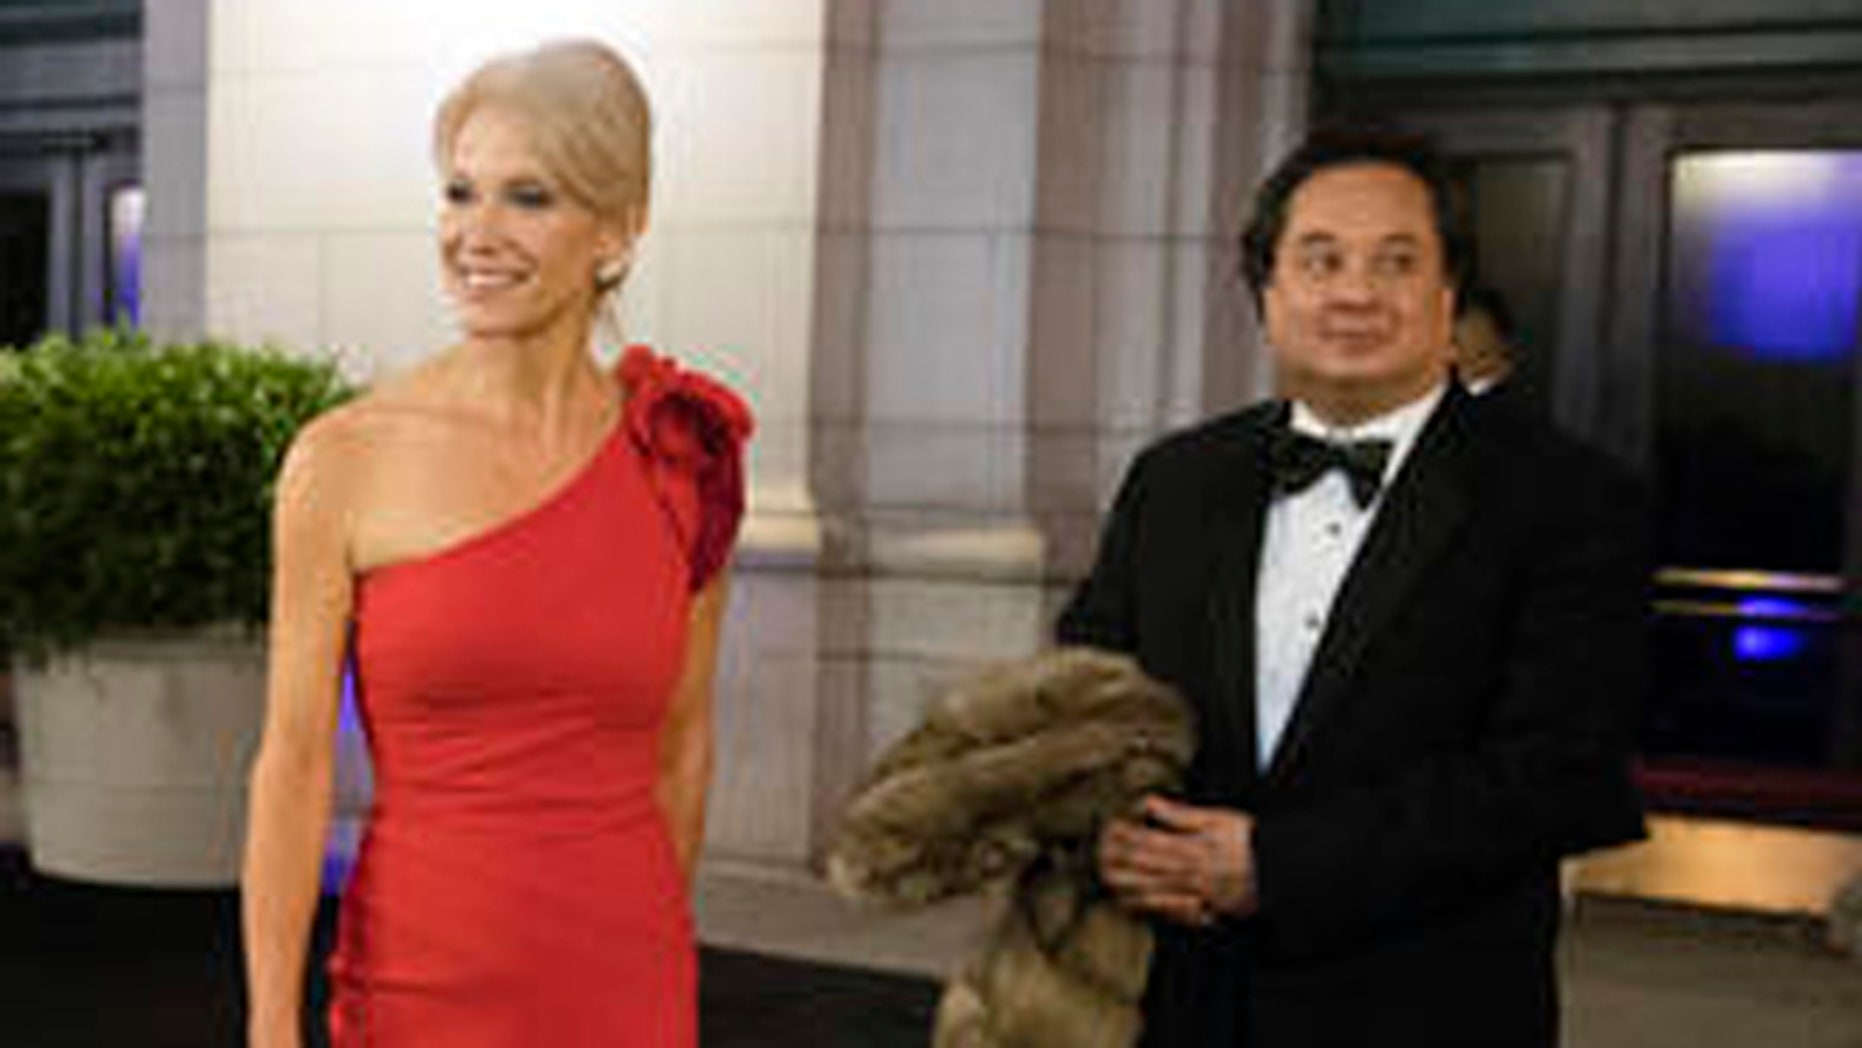 FILE: Jan. 19, 2017: President Trump adviser Kellyanne Conway and husband George Conway, Union Station, Washington, D.C. (AP)